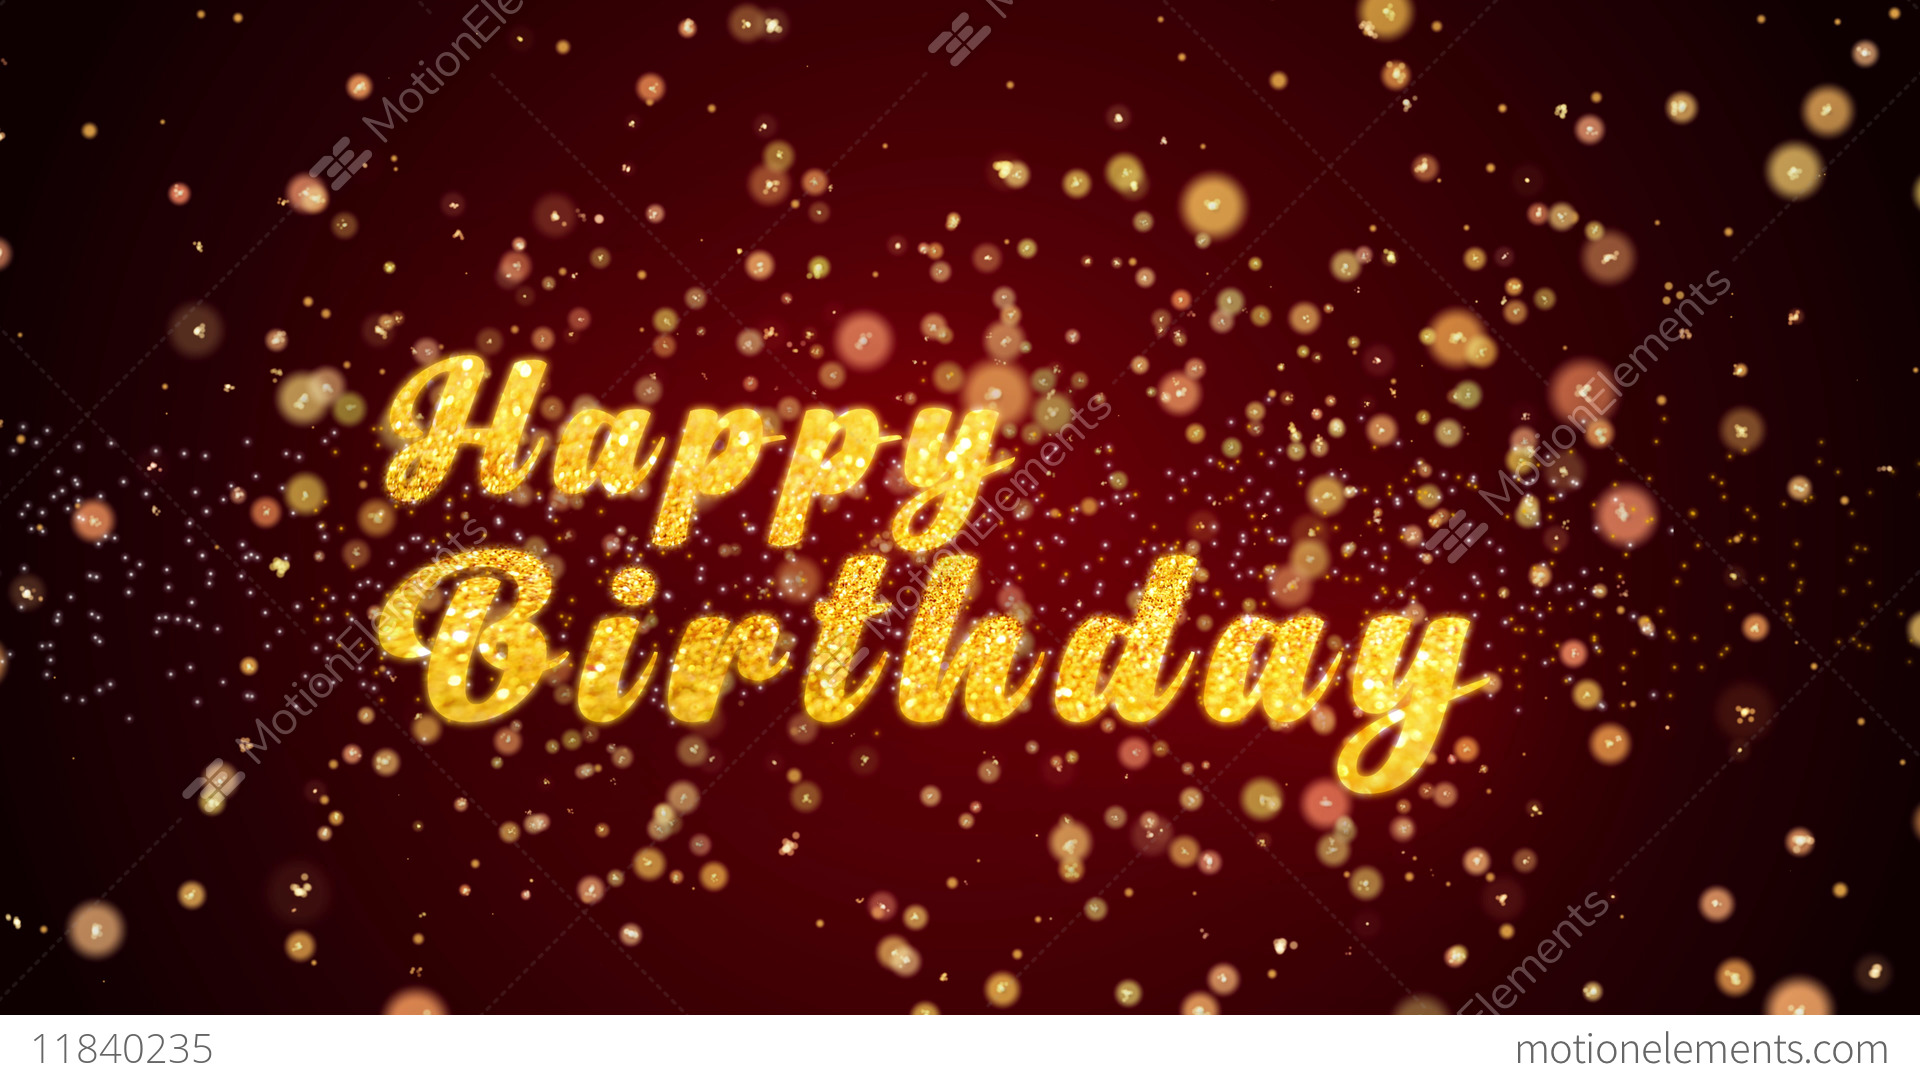 Happy Birthday Greeting Card Text Shiny Particles For Stock Video Footage